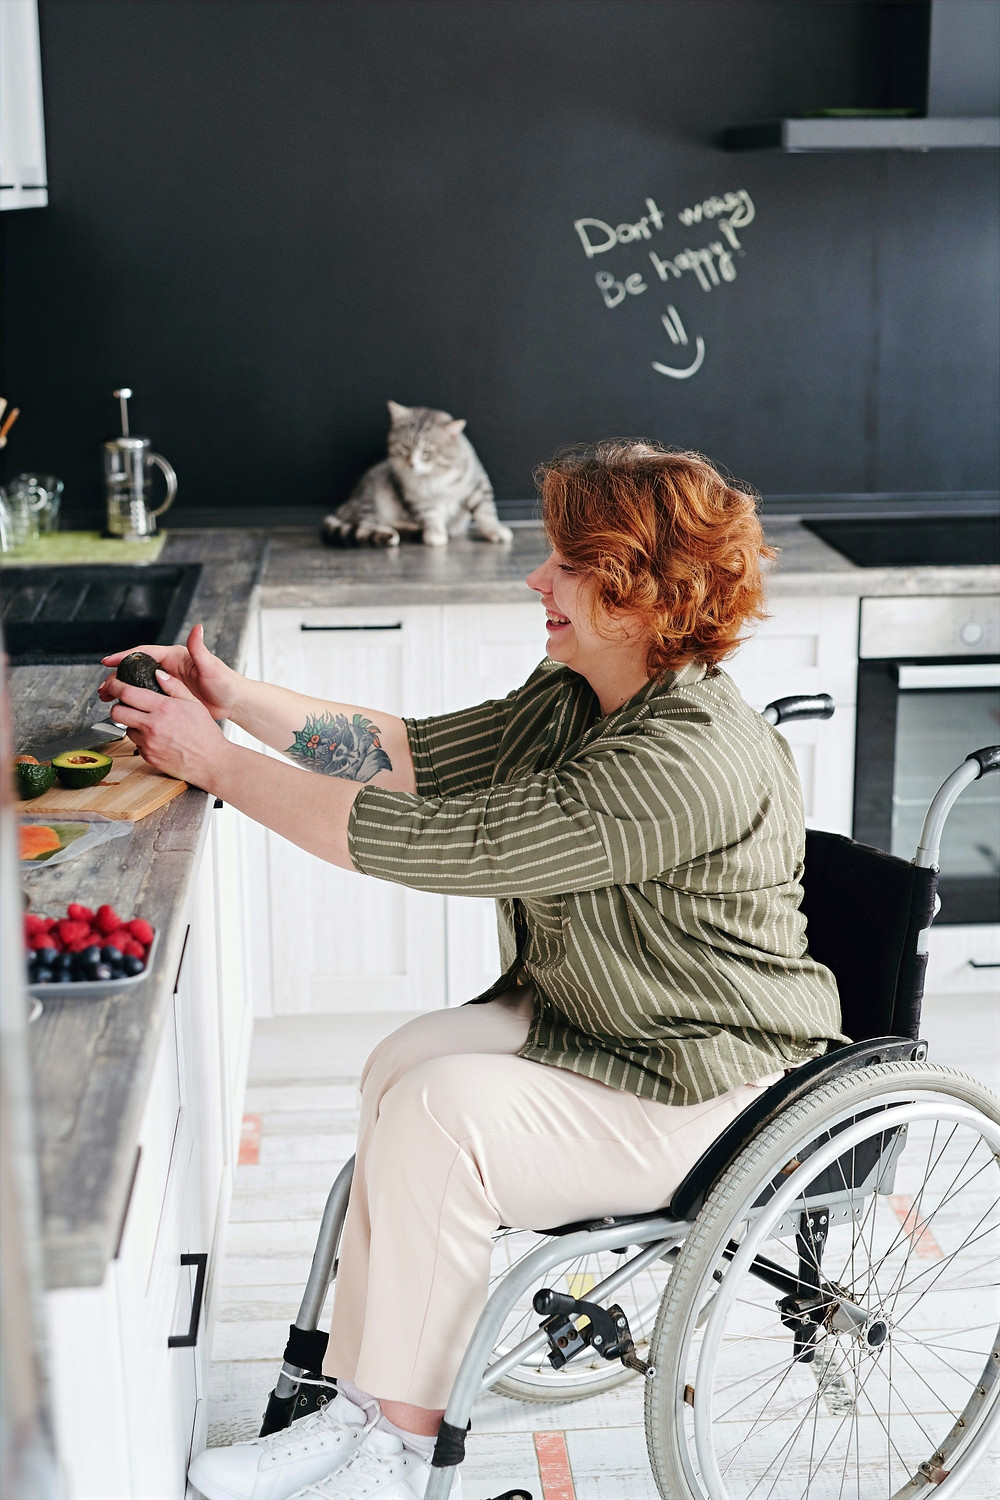 A person in a wheelchair picks up an avocado from a cutting board in a kitchen.